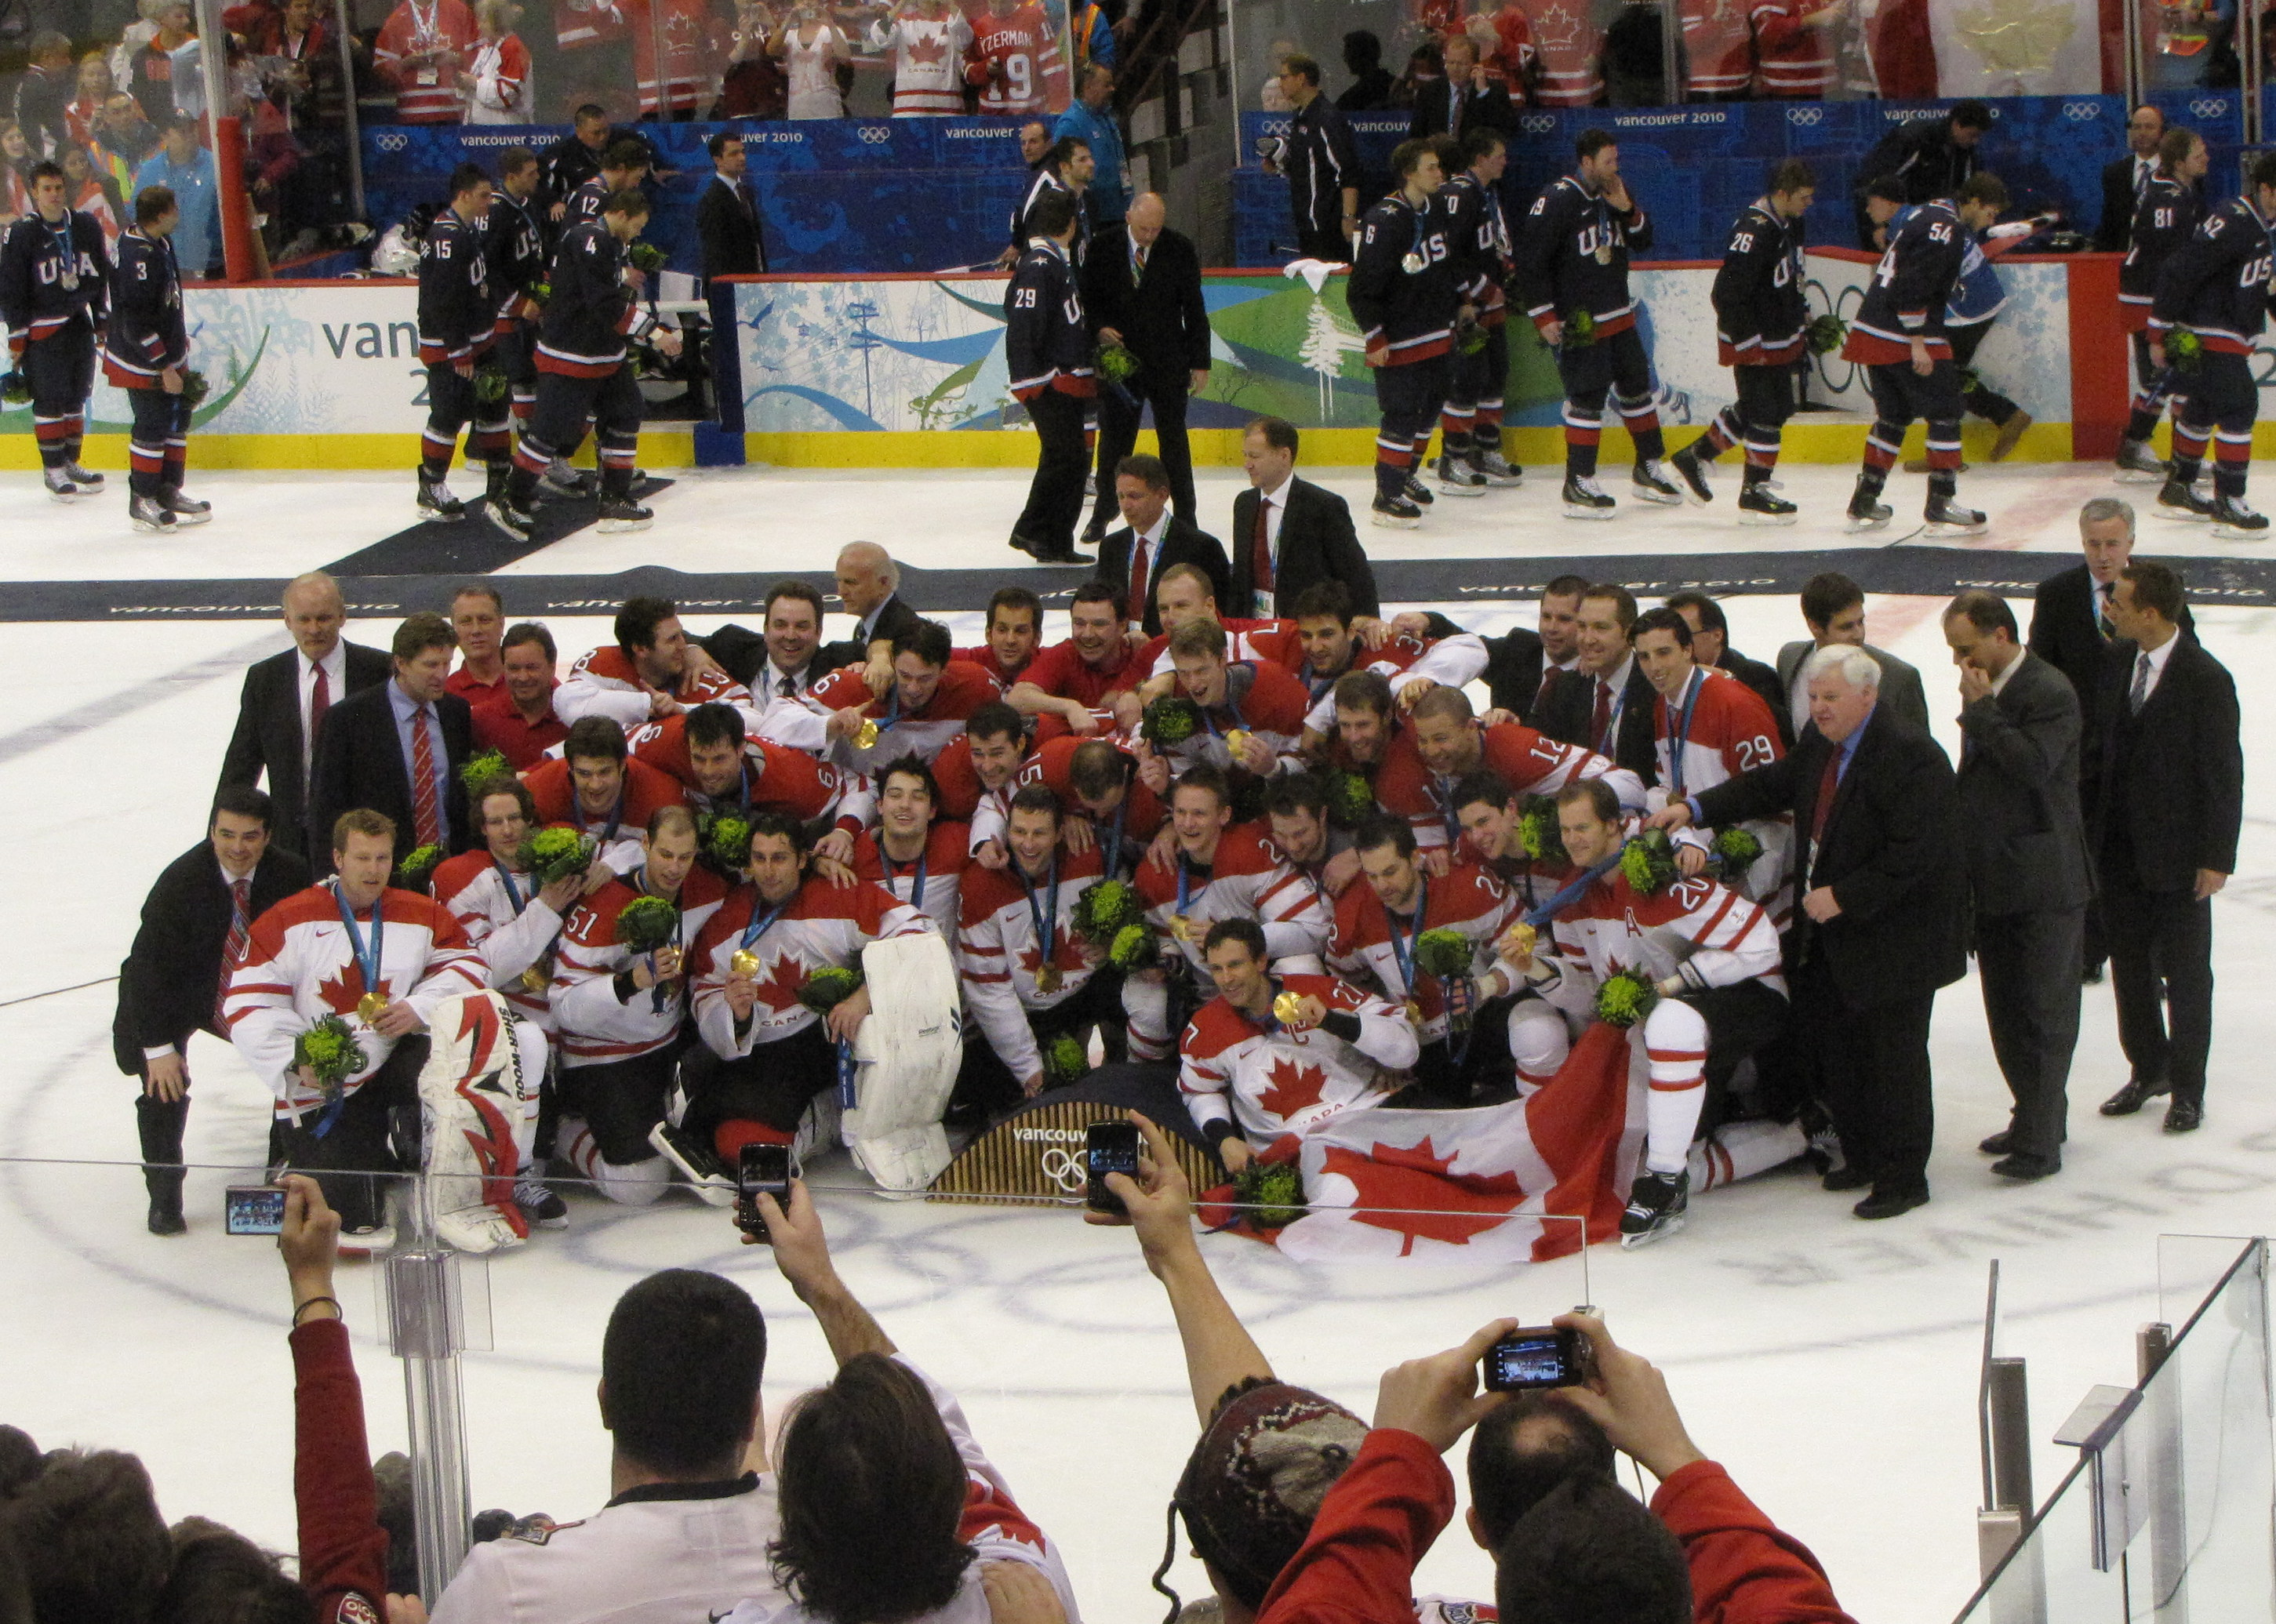 World Championship in ice hockey - 2016: there is very little time left before the landmark event